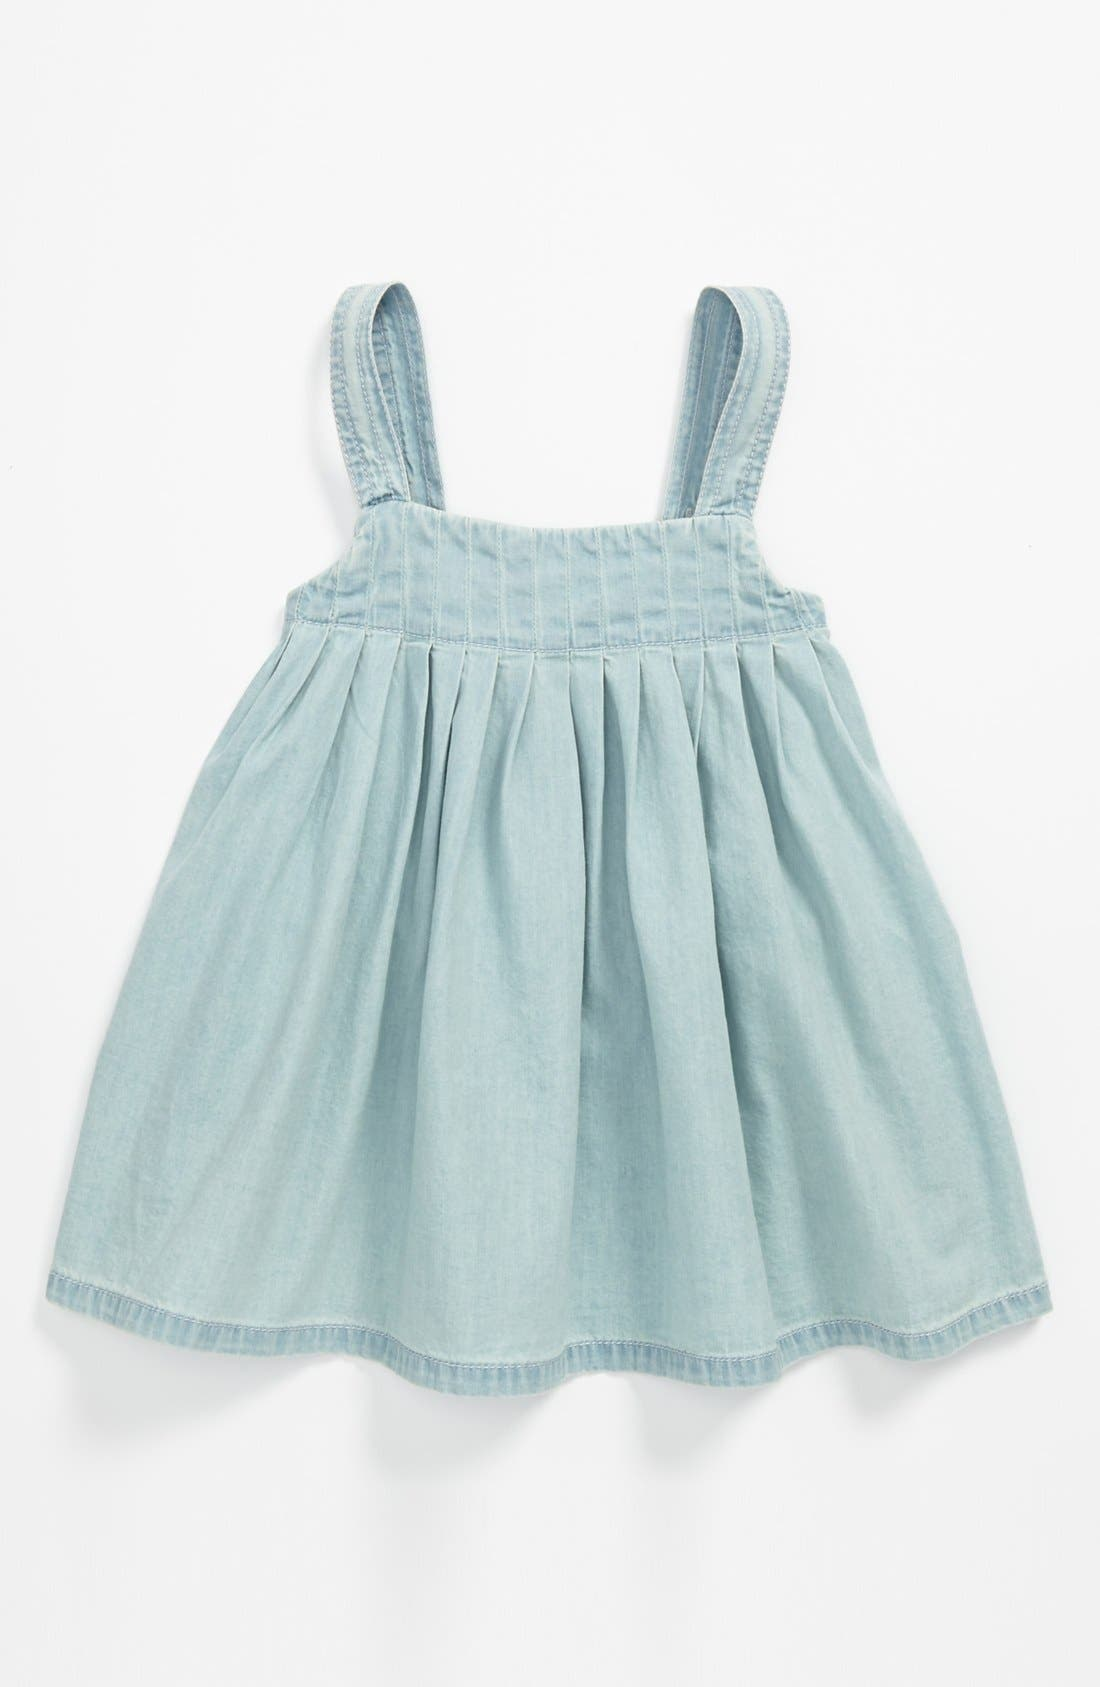 Main Image - Tucker + Tate 'Carlie' Pleated Denim Tank Top (Toddler)